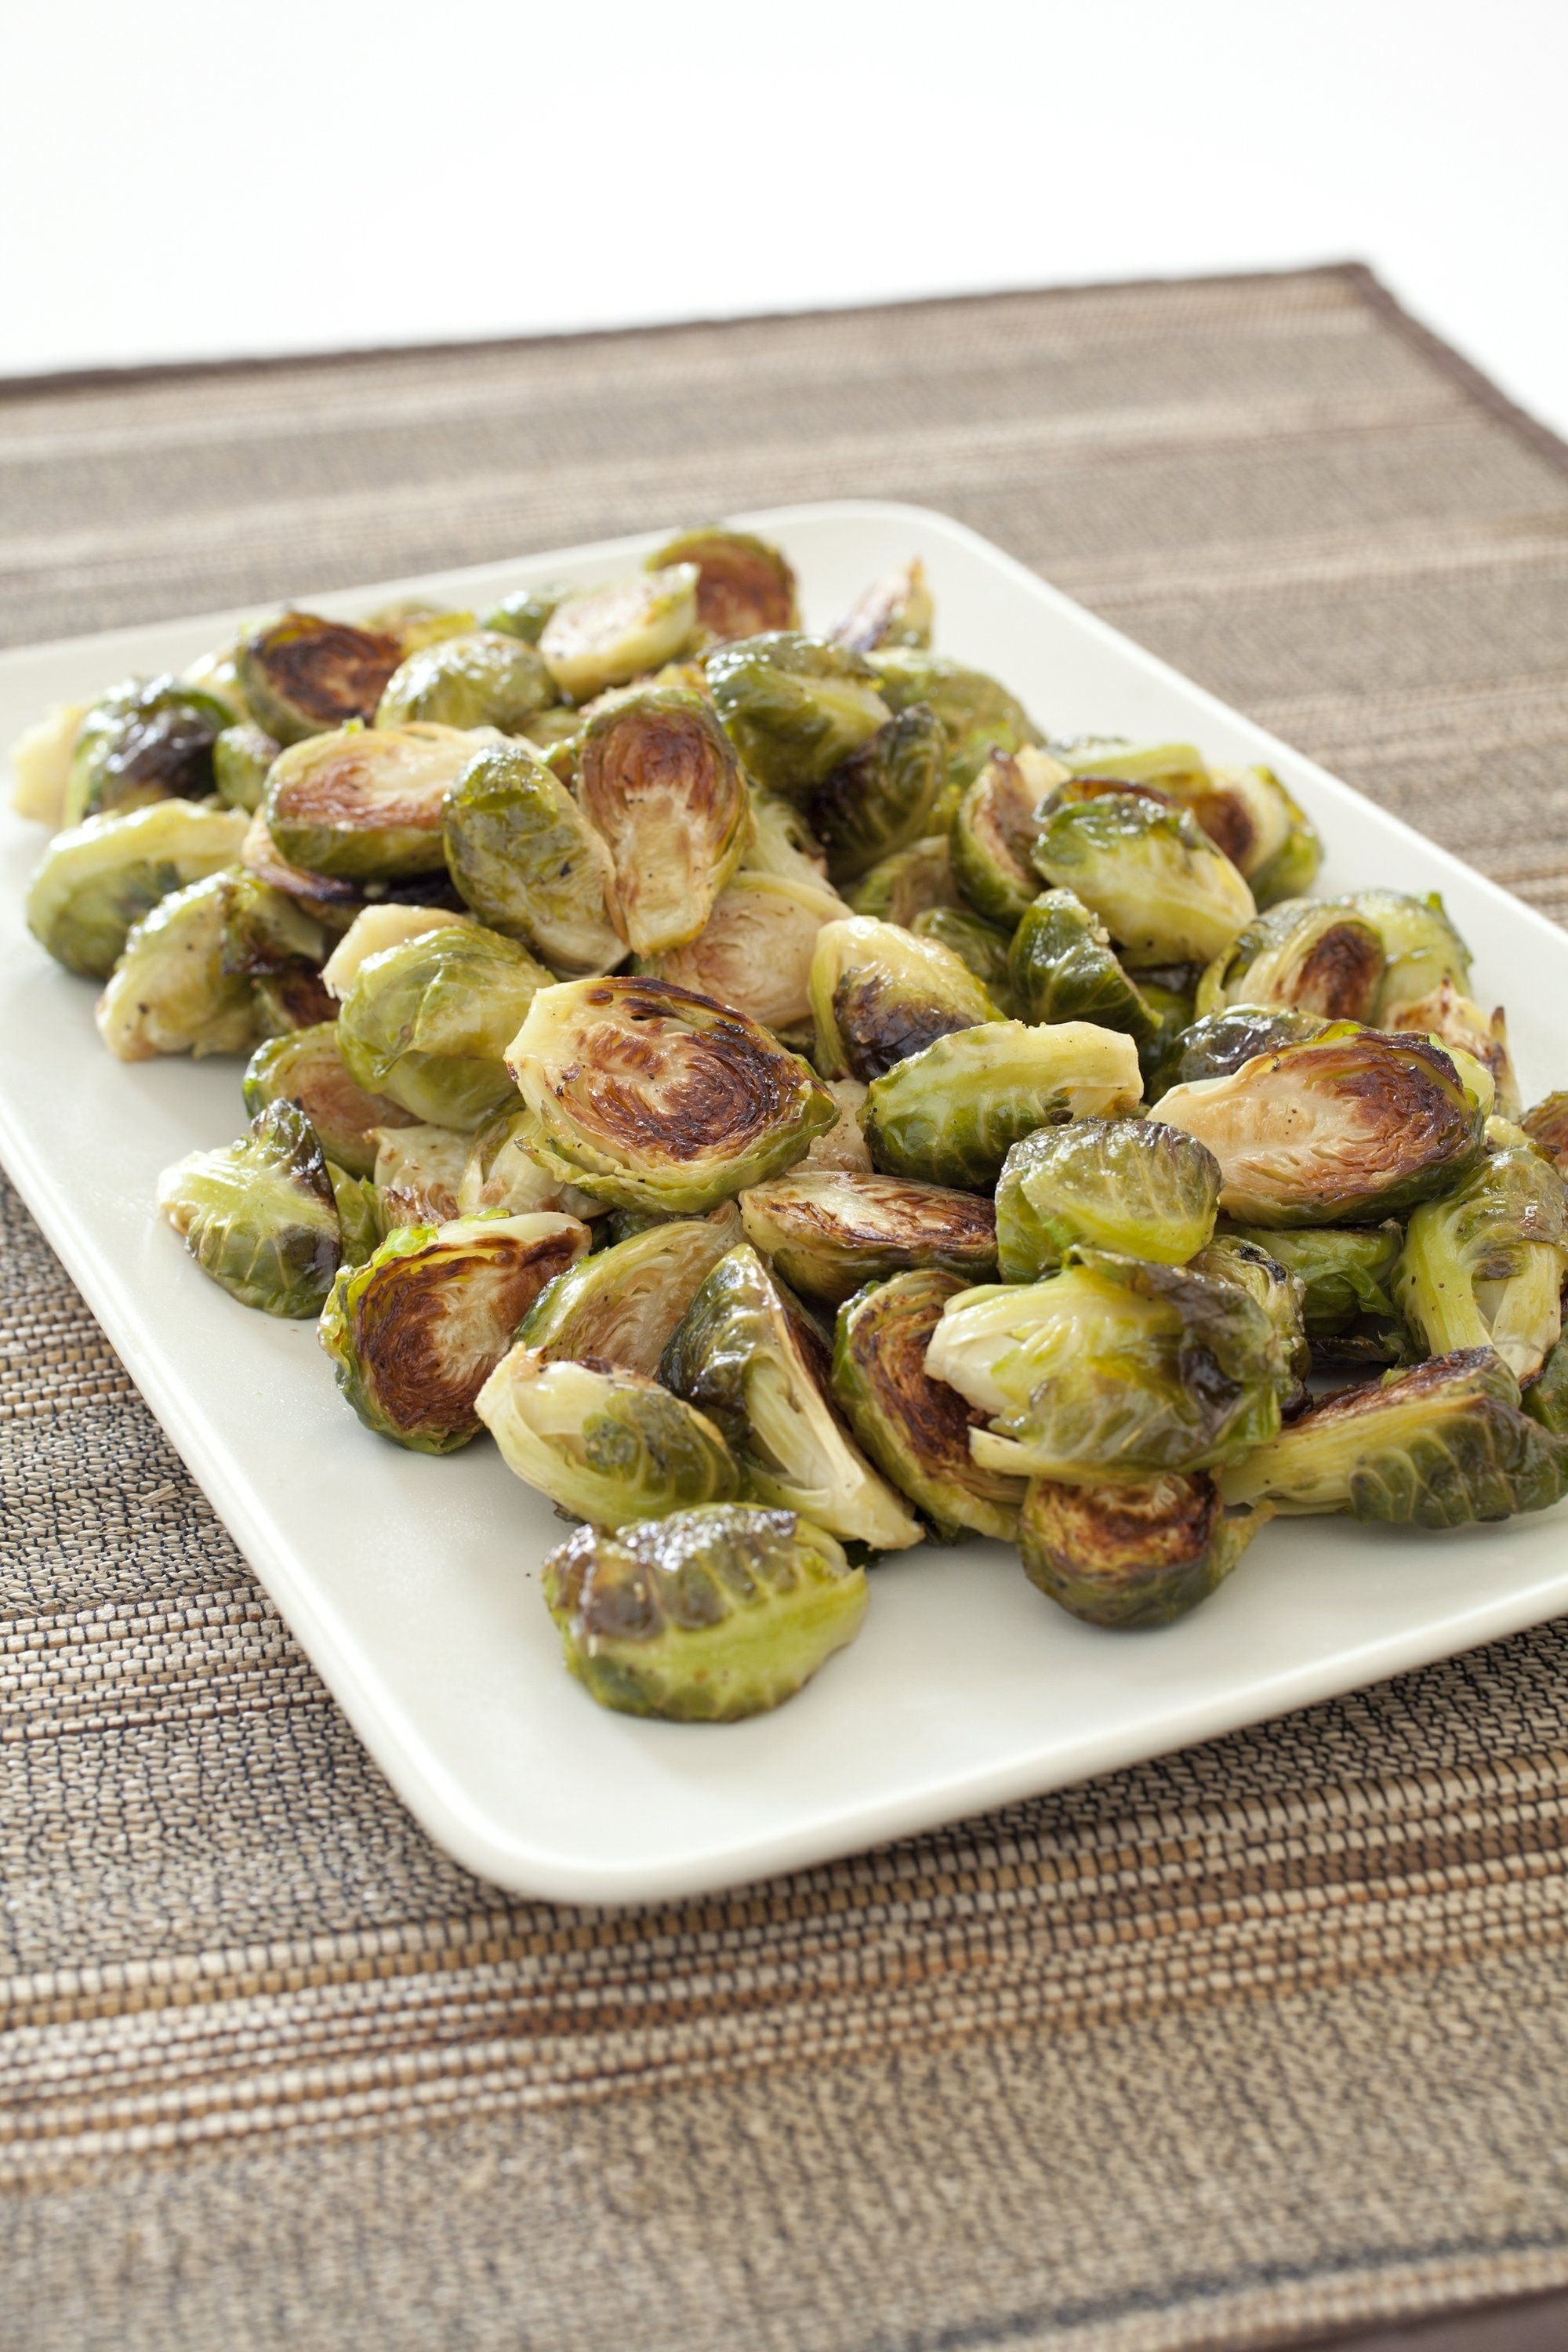 Roasting gets Brussels sprouts caramelized on the outside